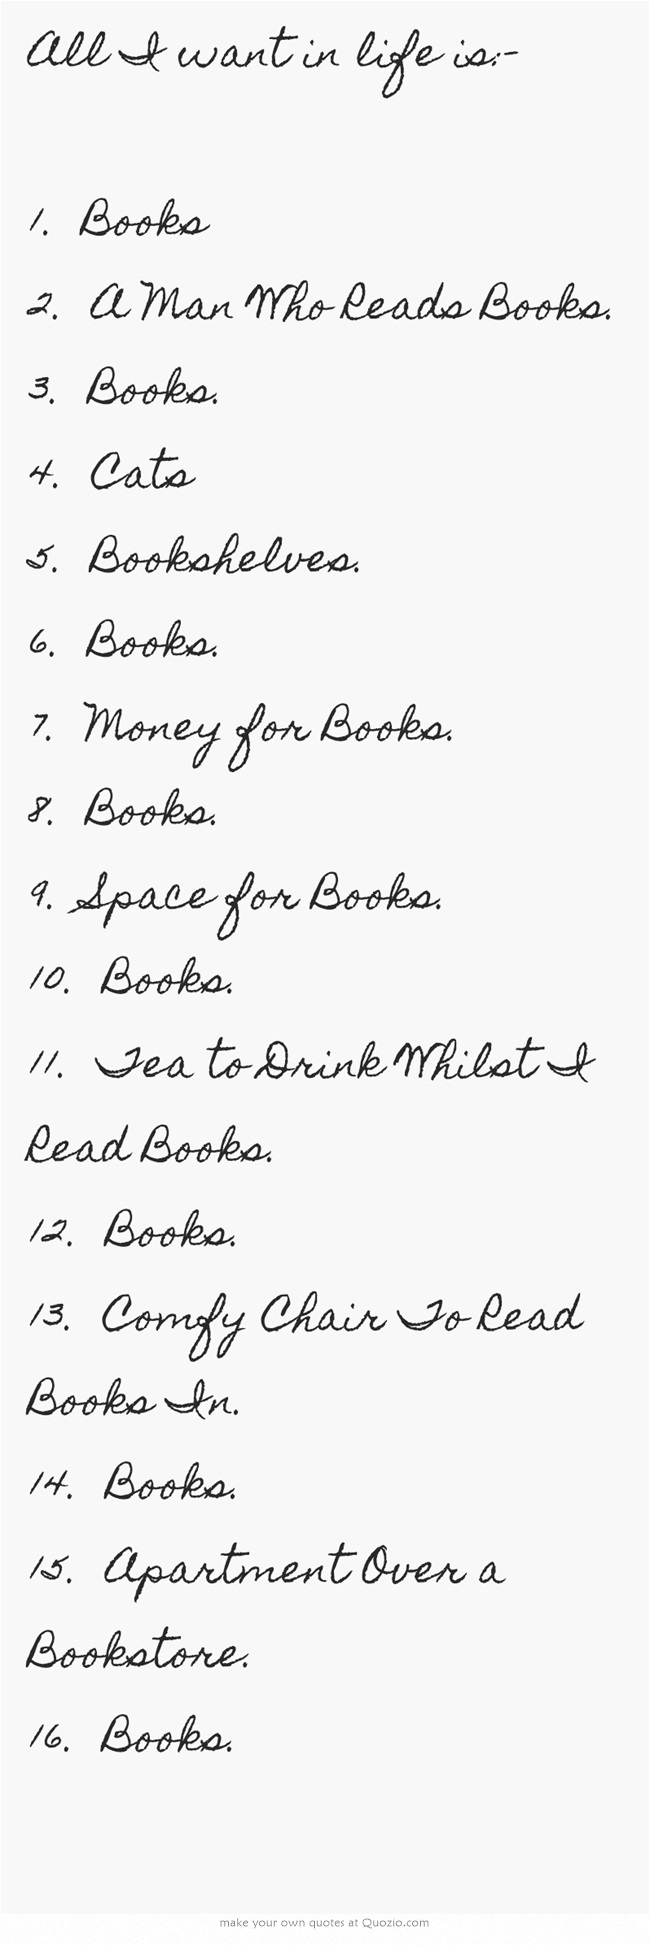 All I want in life is:- 1. Books 2. A Man Who Reads Books. 3. Books. 4. Cats 5. Bookshelves. 6. Books. 7. Money for Books. 8. Books. 9. Space for Books. 10. Books. 11. Tea to Drink Whilst I Read Books. 12. Books. 13. Comfy Chair To Read Books In. 14. Books. 15. Apartment Over a Bookstore. 16. Books.